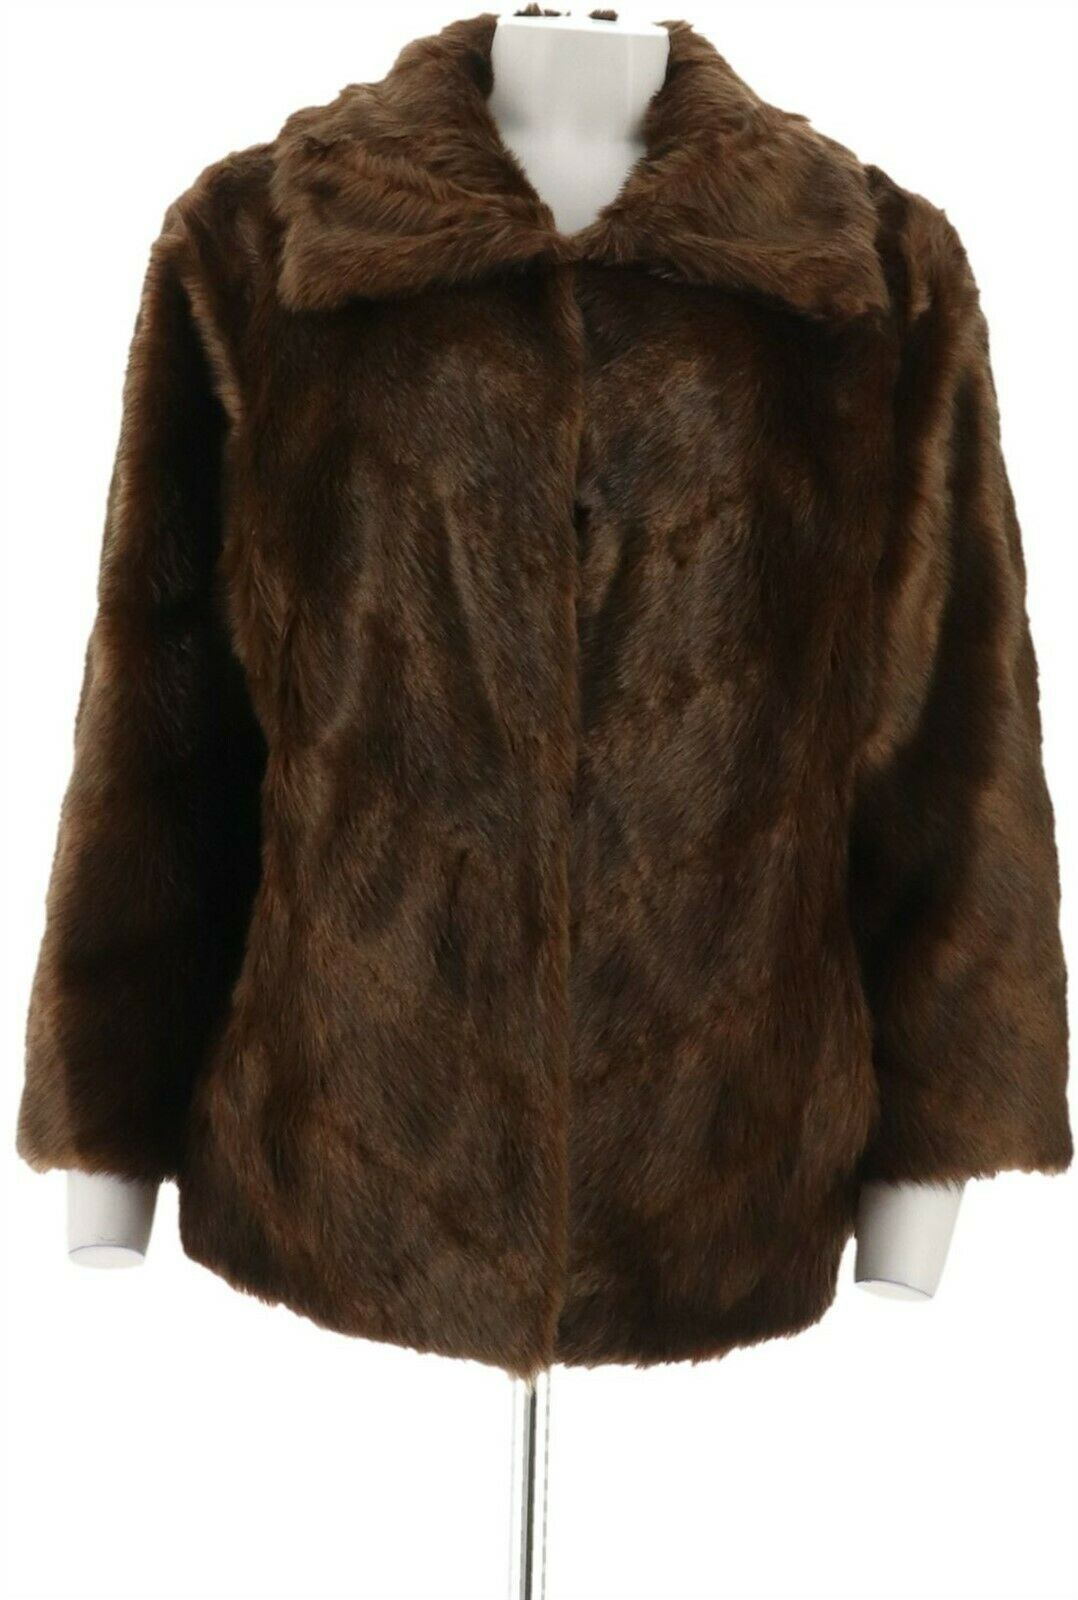 Primary image for Dennis Basso Platinum Chevron Cut Faux Fur Shrug Jacket Chestnut 1X NEW A270680